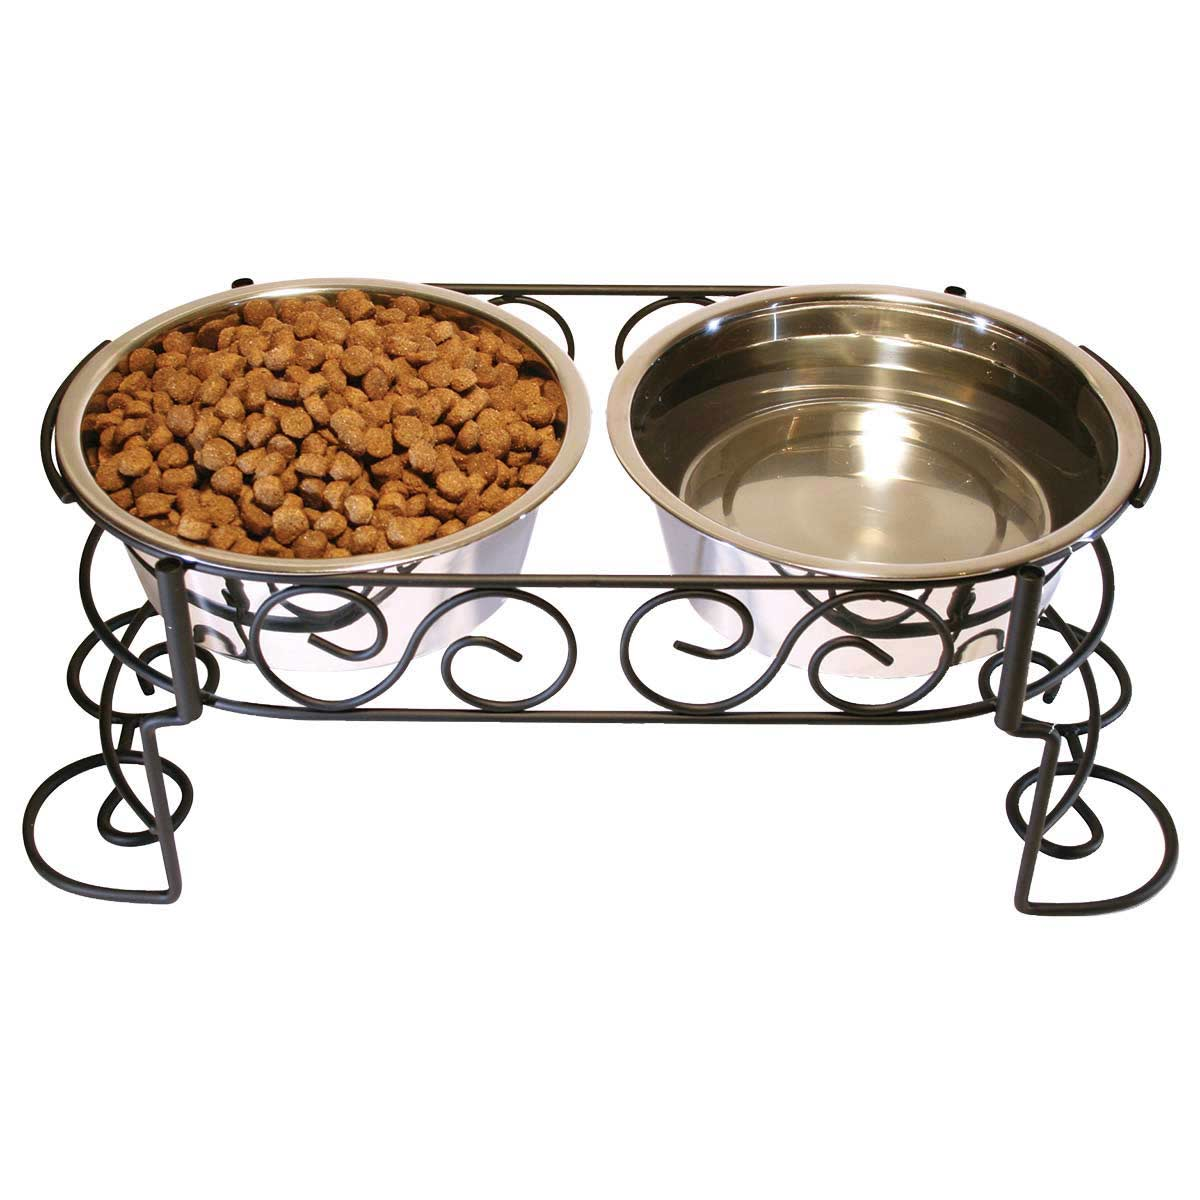 Ethical Mediterranean Old World Stainless Steel Double Diner for Dogs 1 Pint